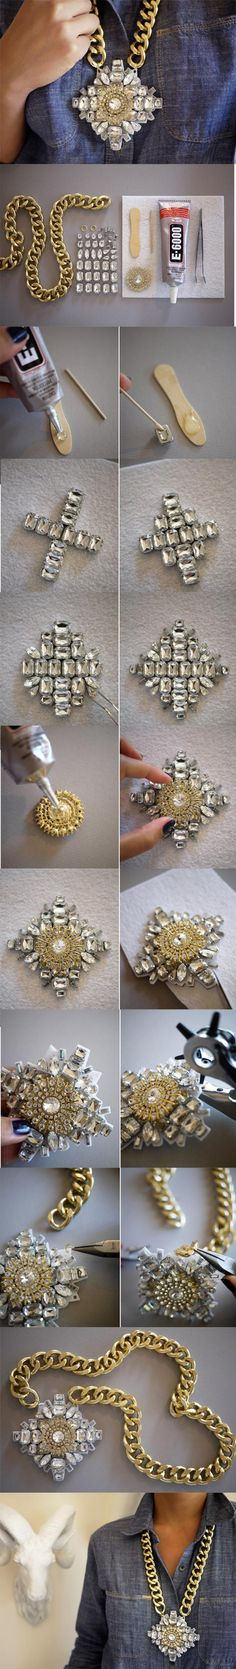 Costume Jewelry DIY